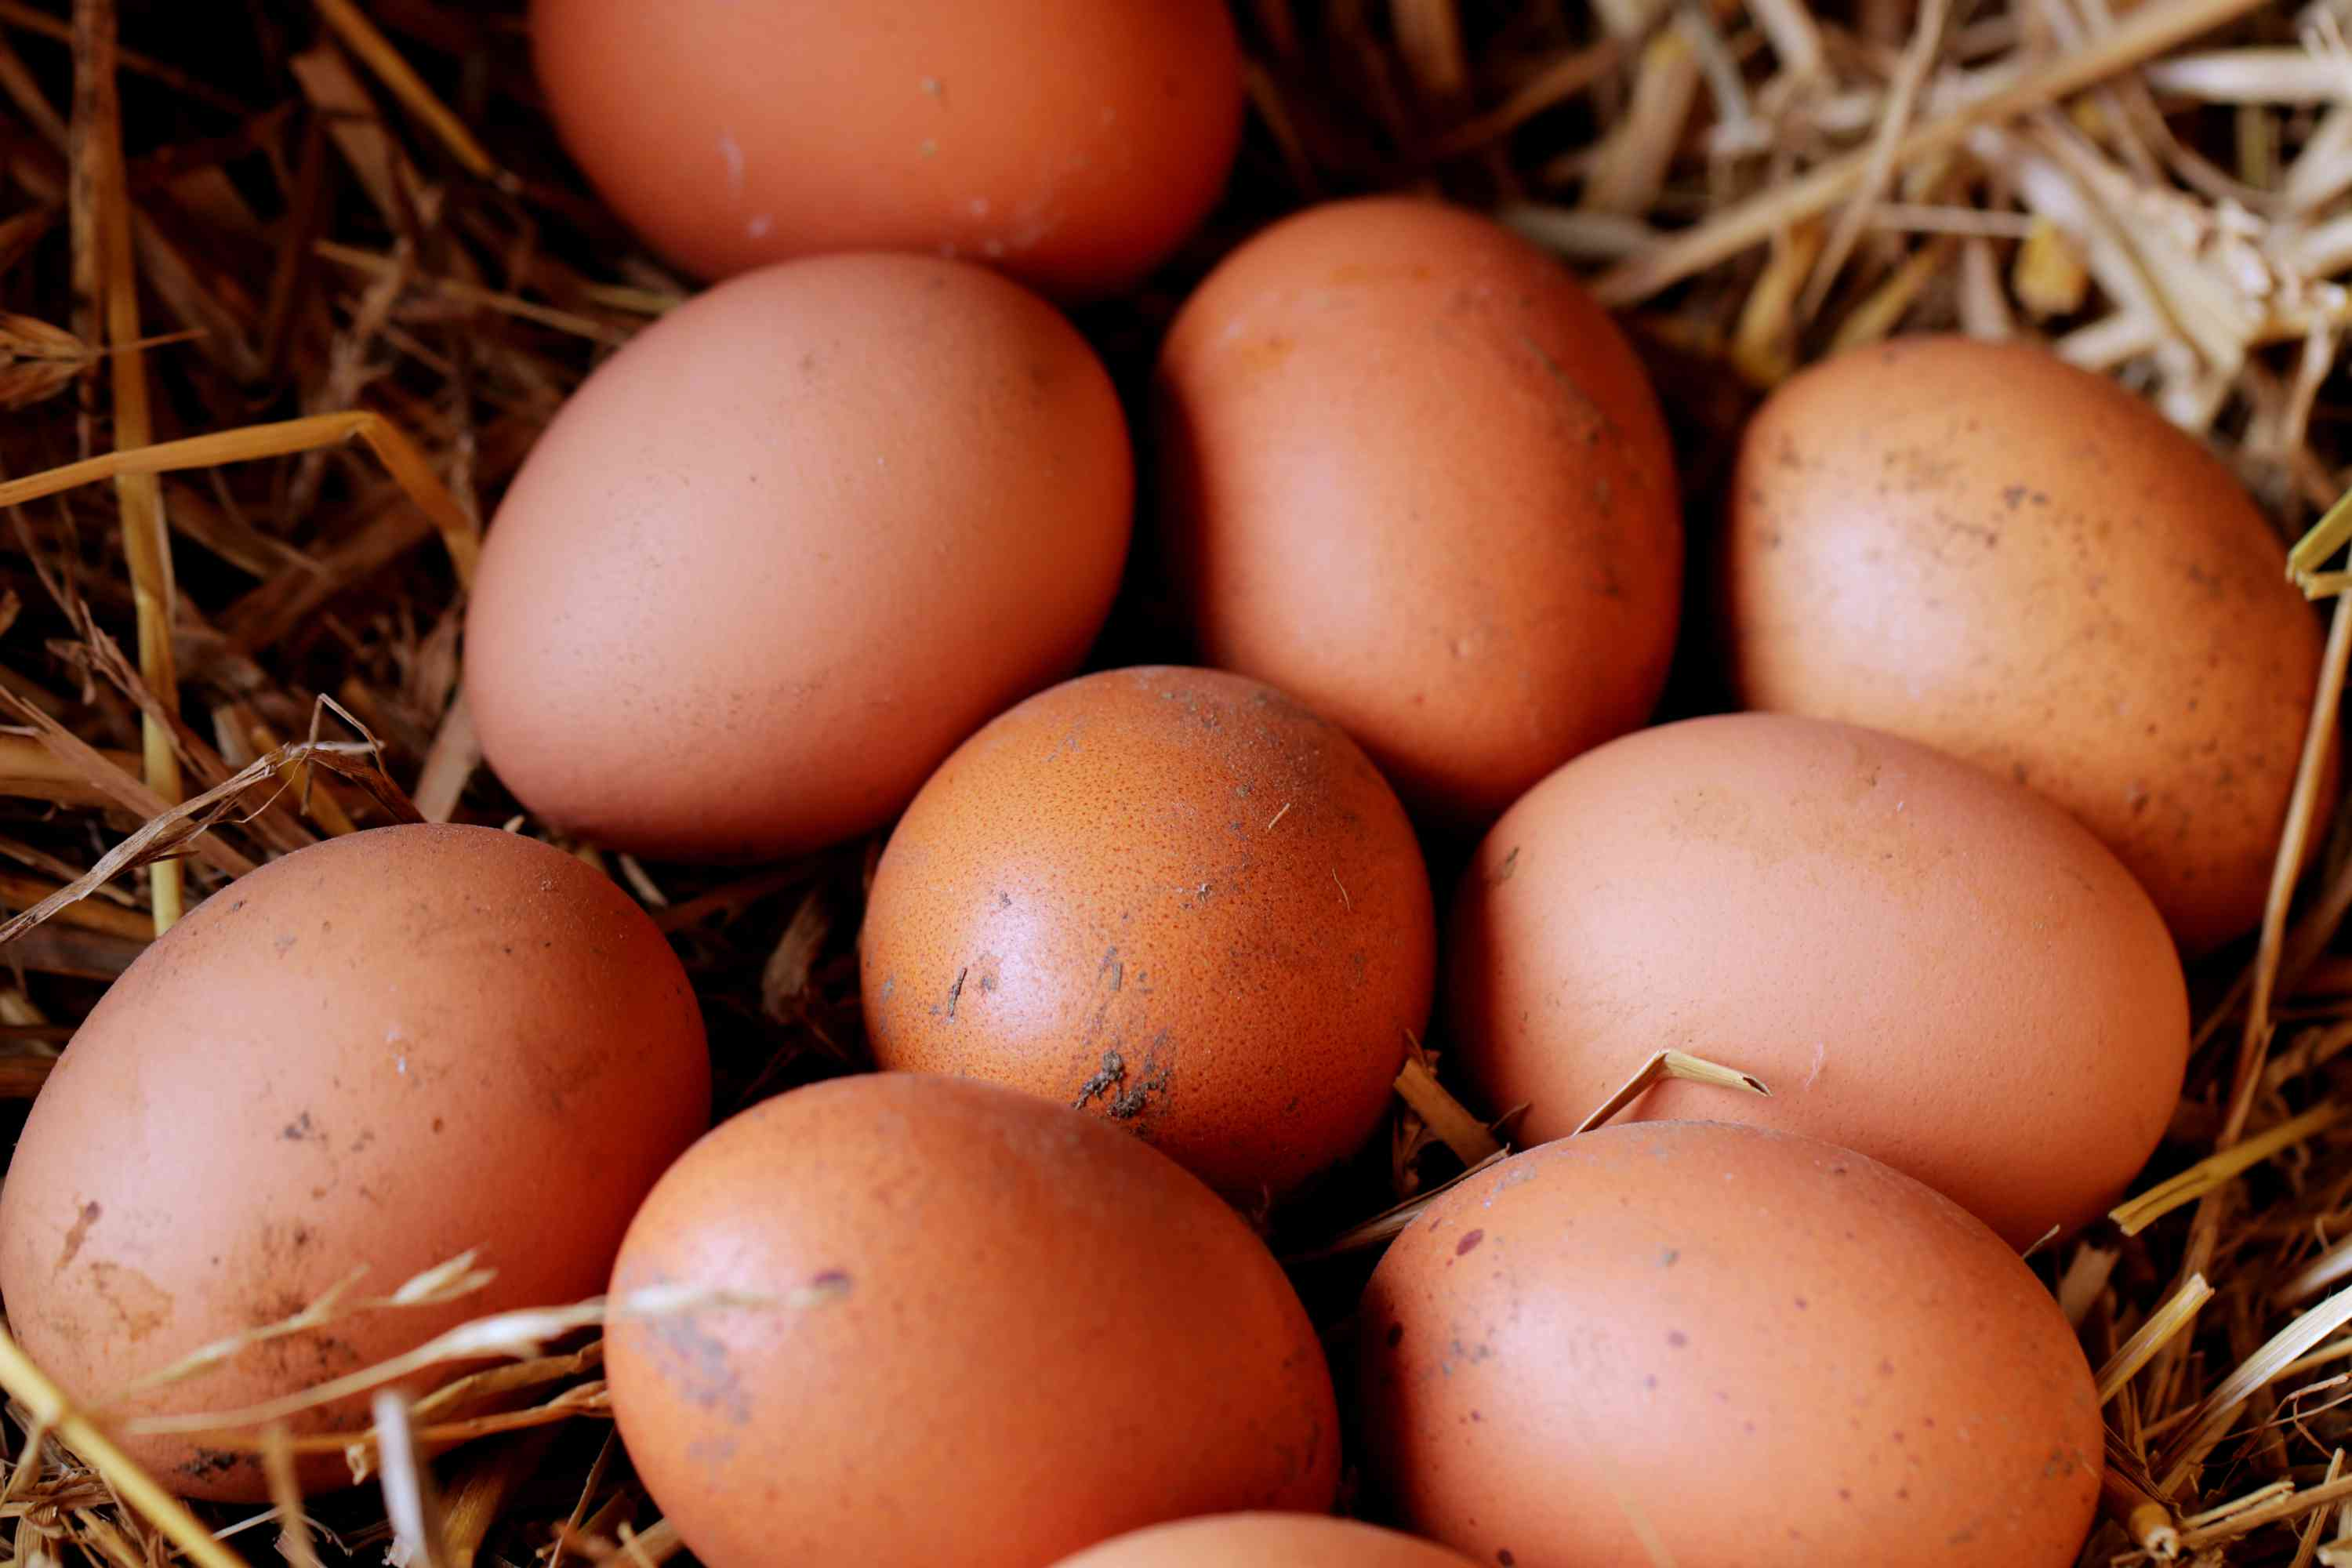 collecting eggs is a daily chicken task